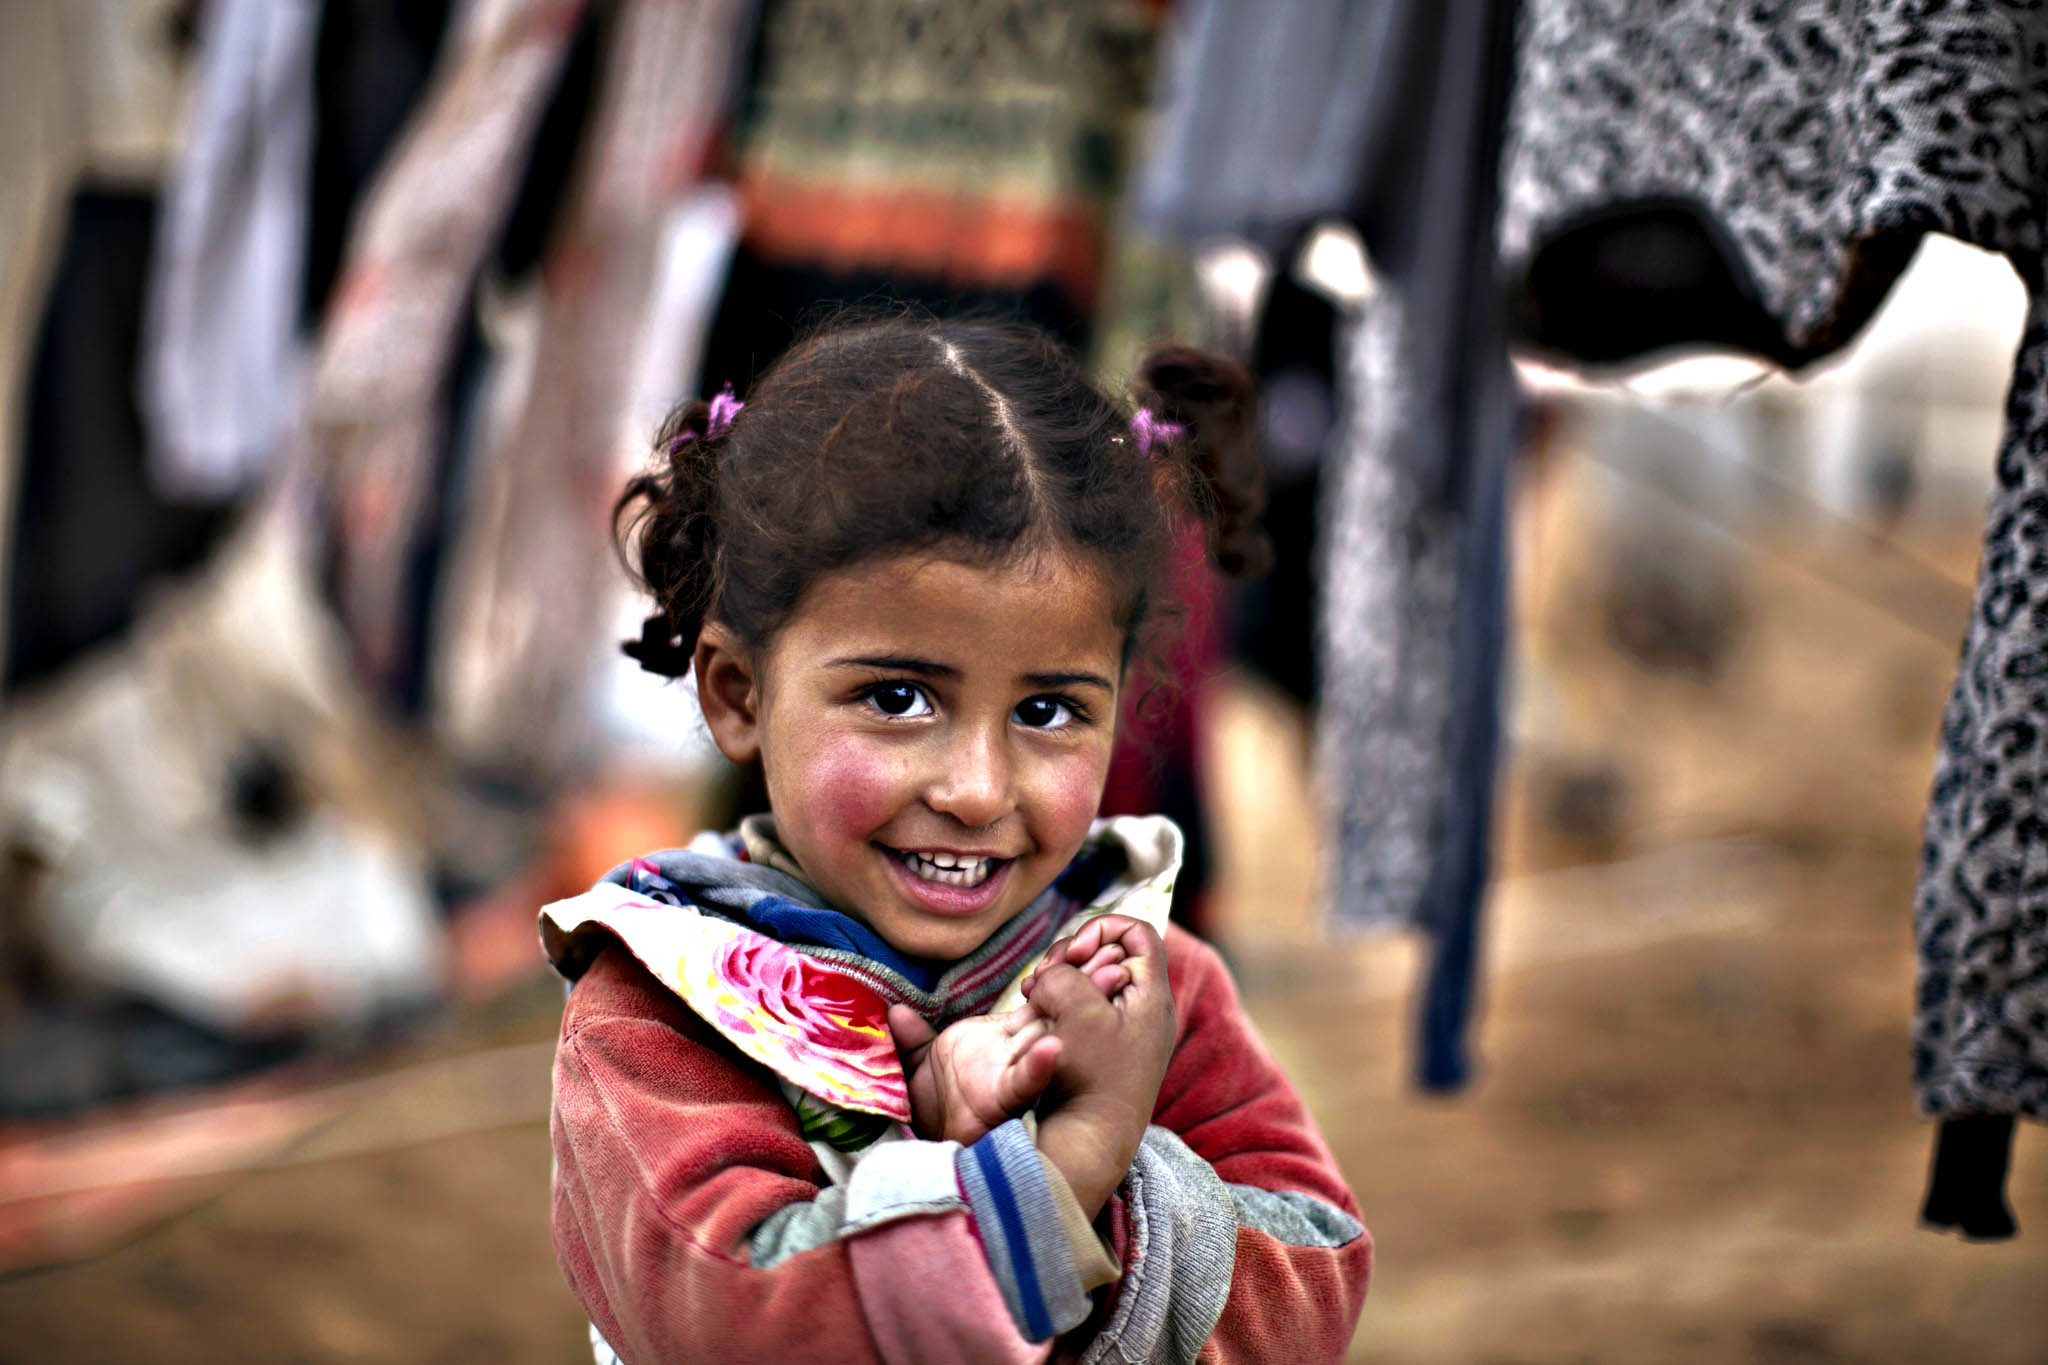 Syrian refugee Bissan Alabdullah, almost 3, smiles while standing next to her family's laundry outside their tent at an informal tented settlement near the Syrian border on the outskirts of Mafraq, Jordan, Wednesday, Jan. 20, 2016.